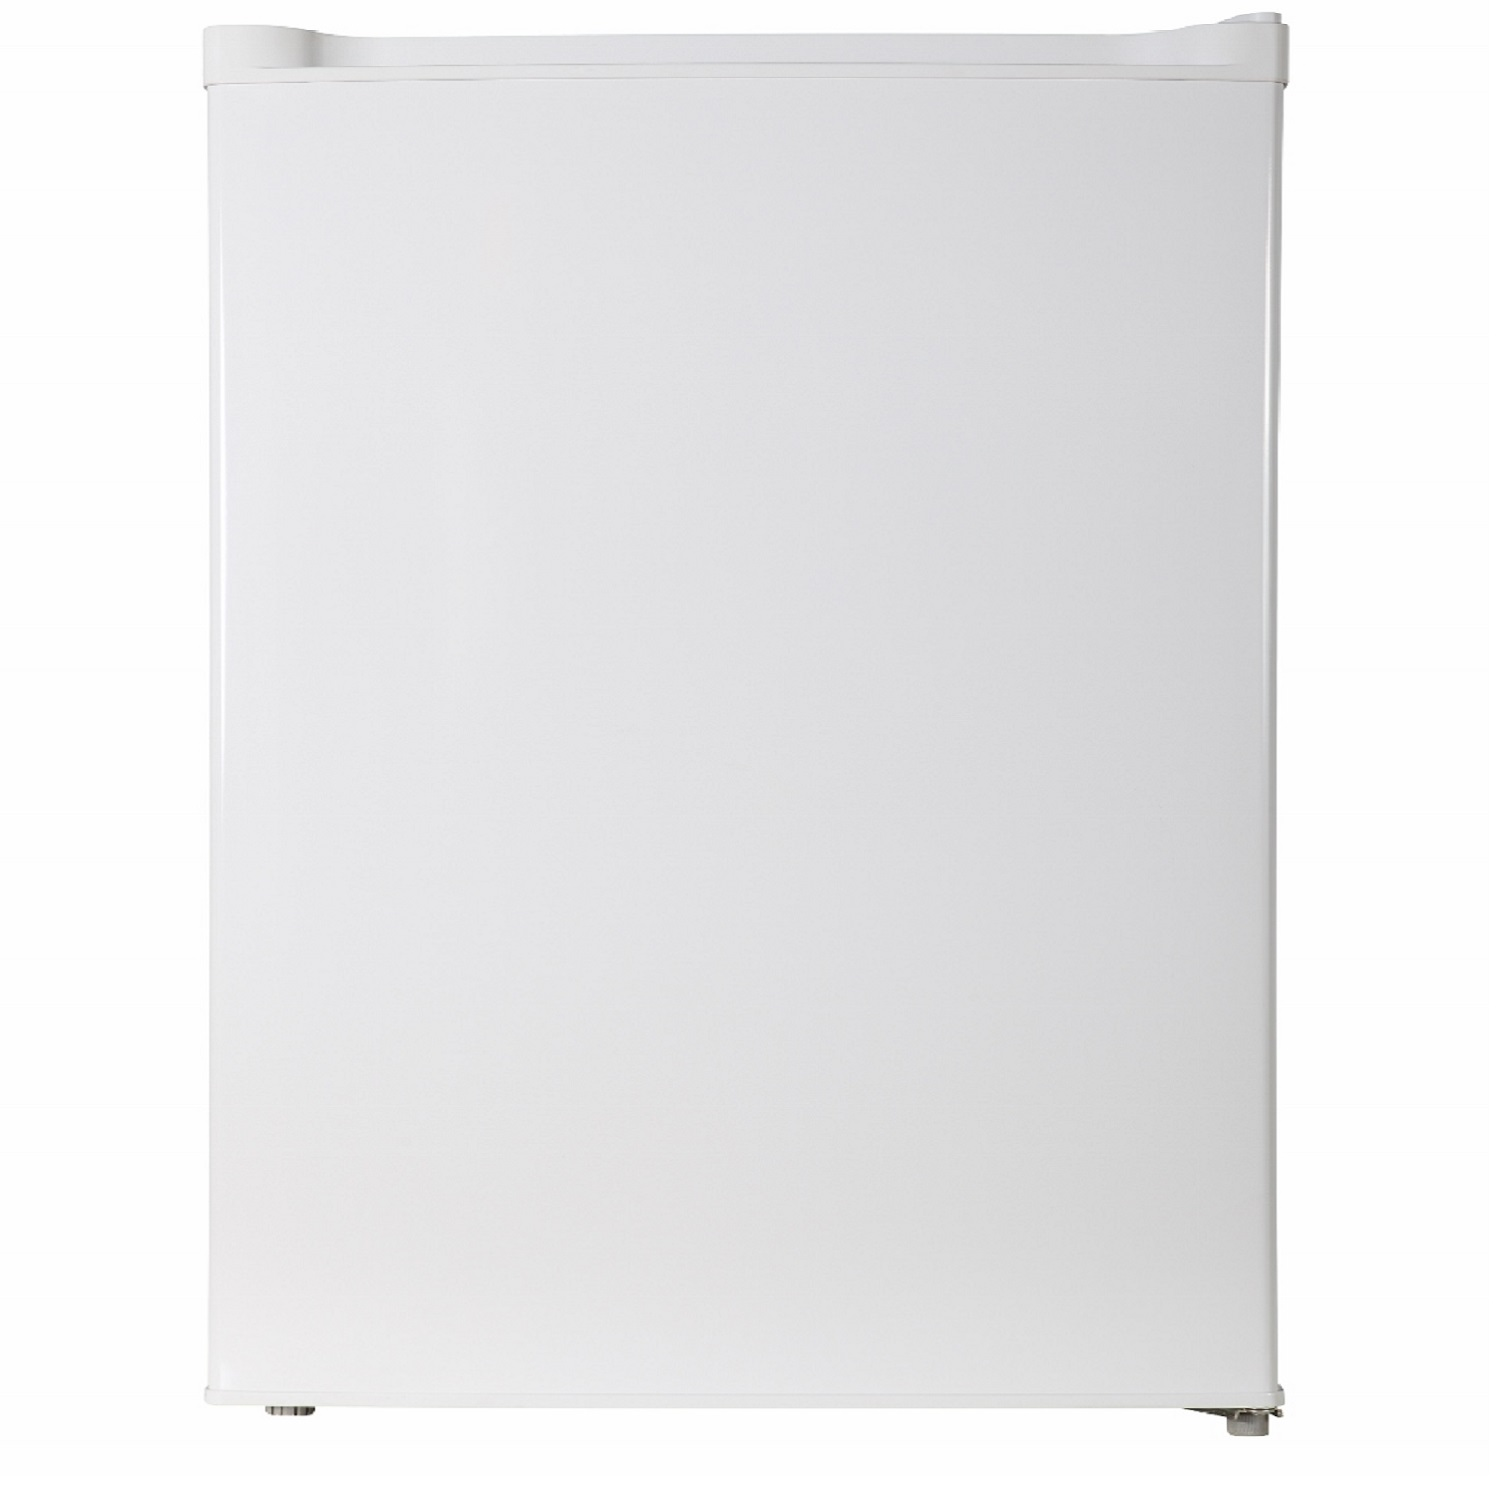 Equator-Midea 3 cu.ft <br> Defrost Upright Freezer White